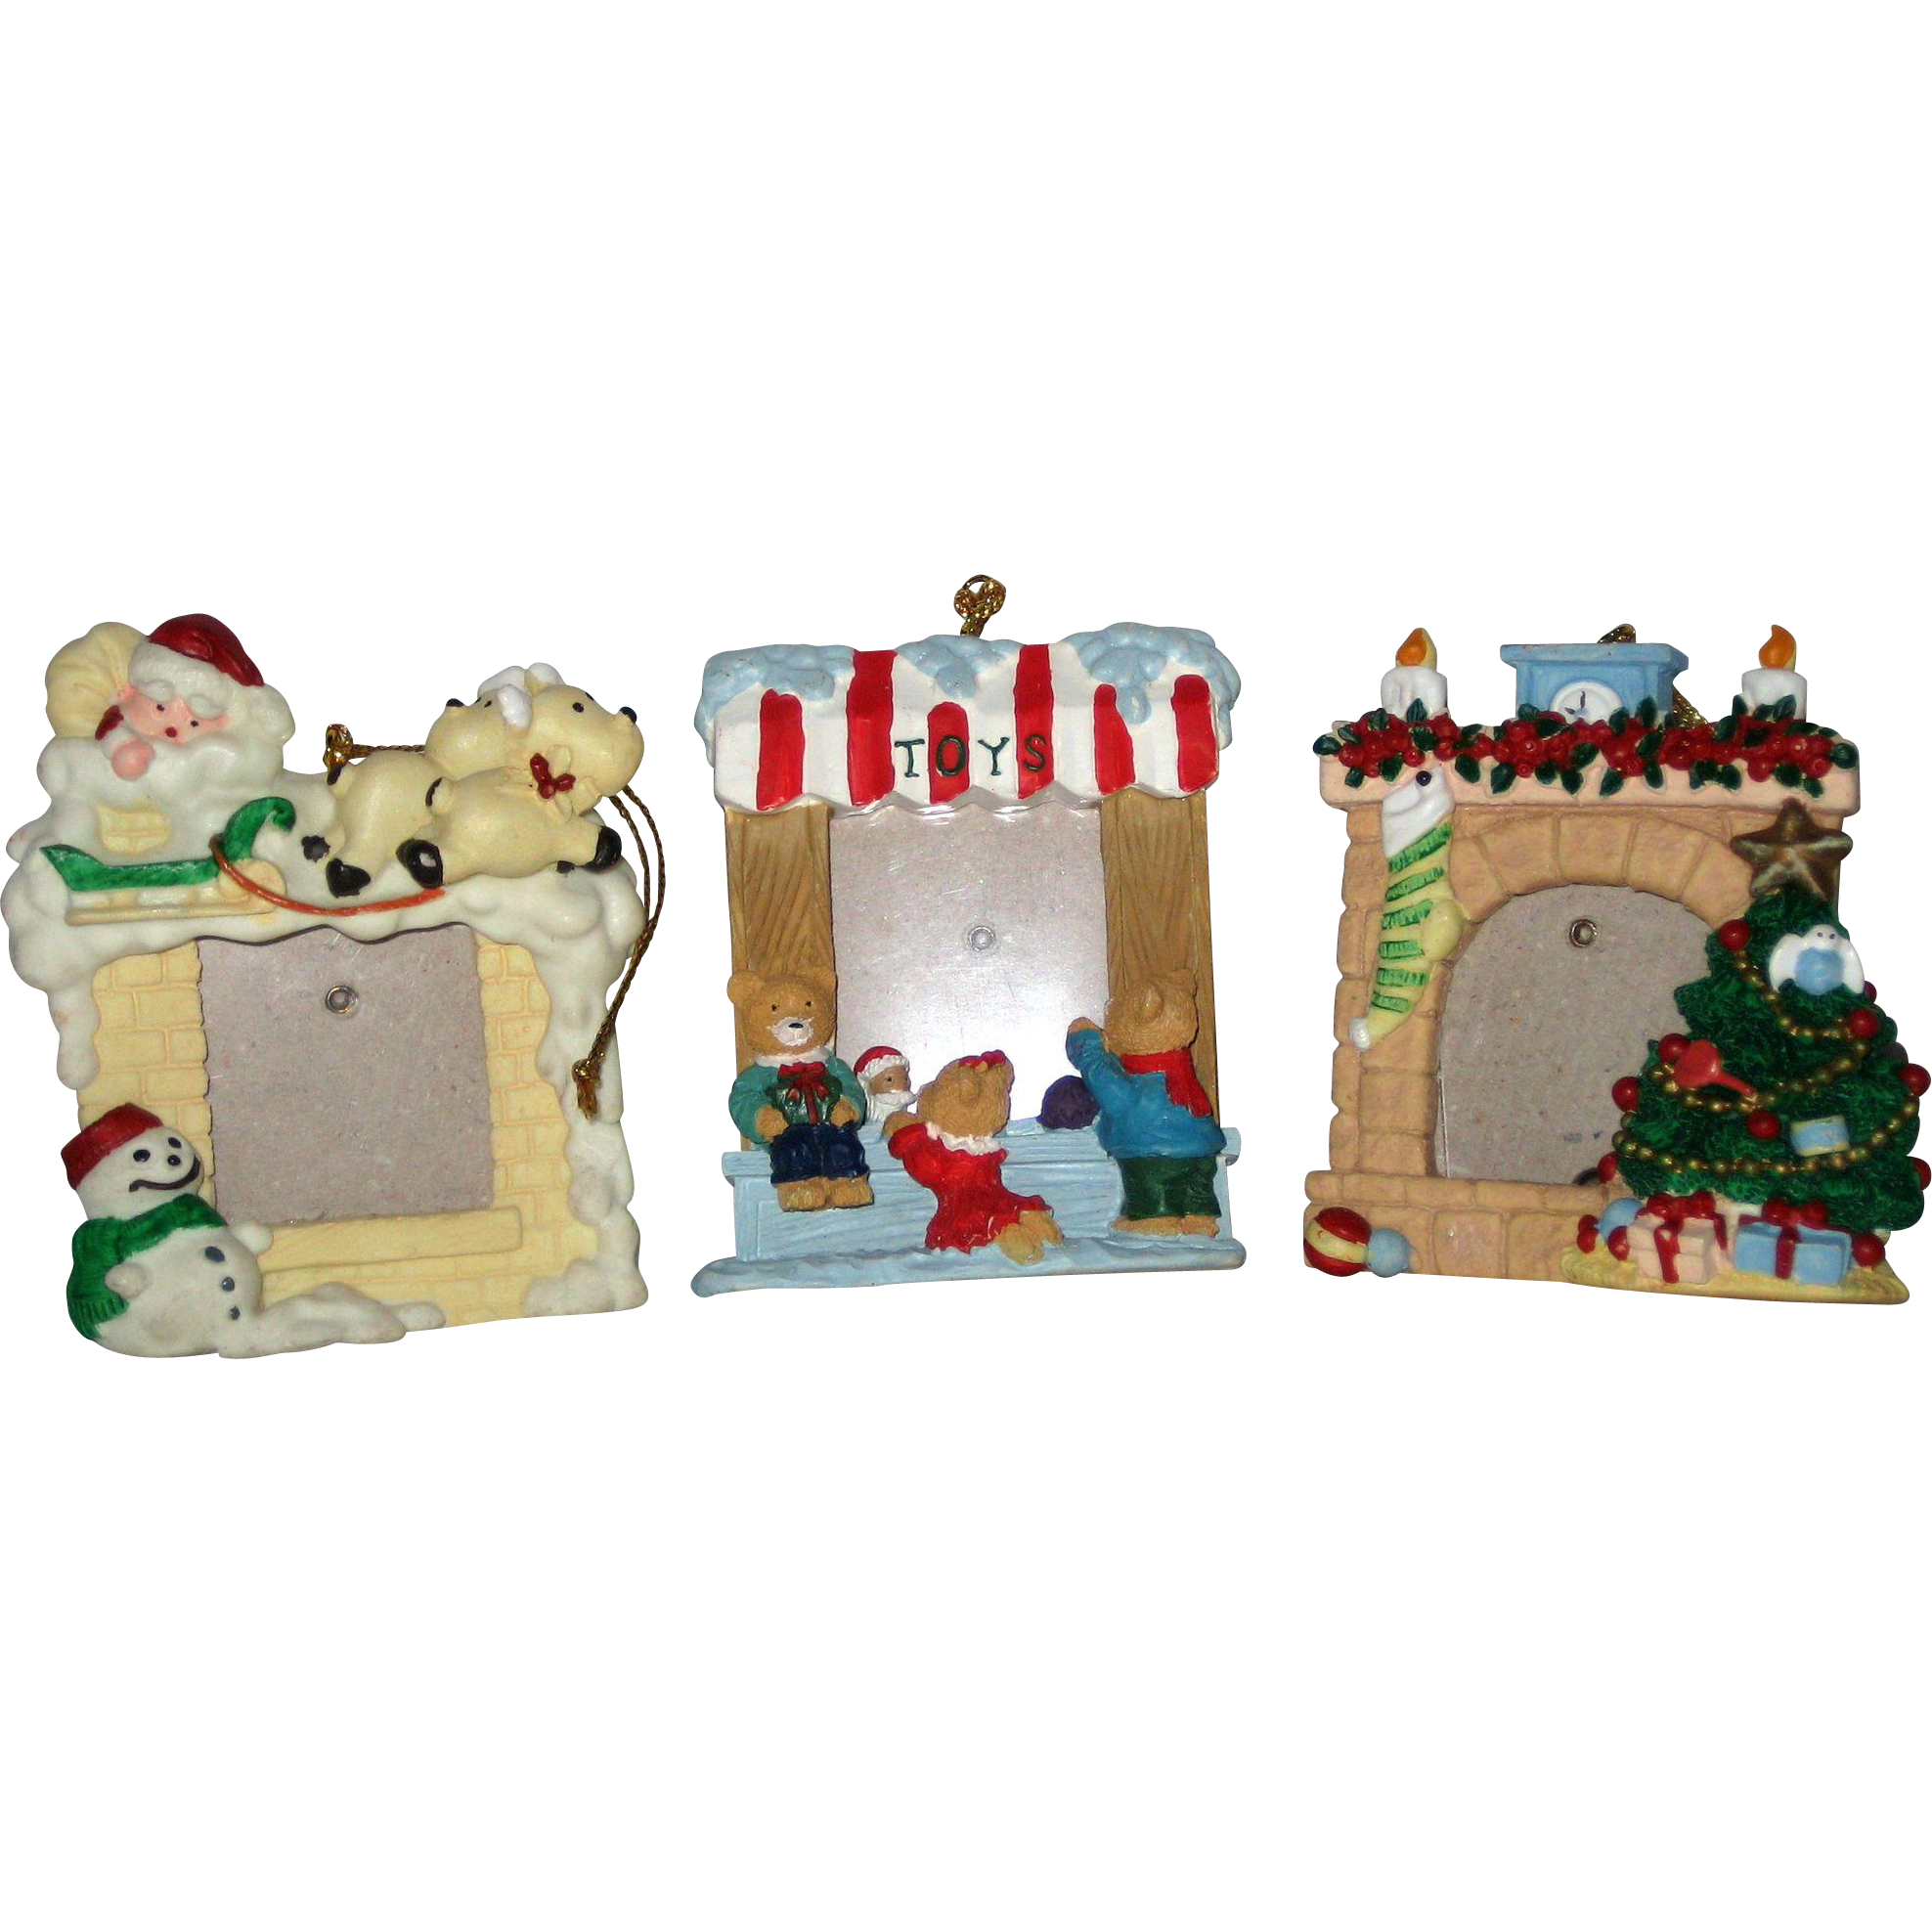 Three Small Holiday Photo Frames for Children's Pictures